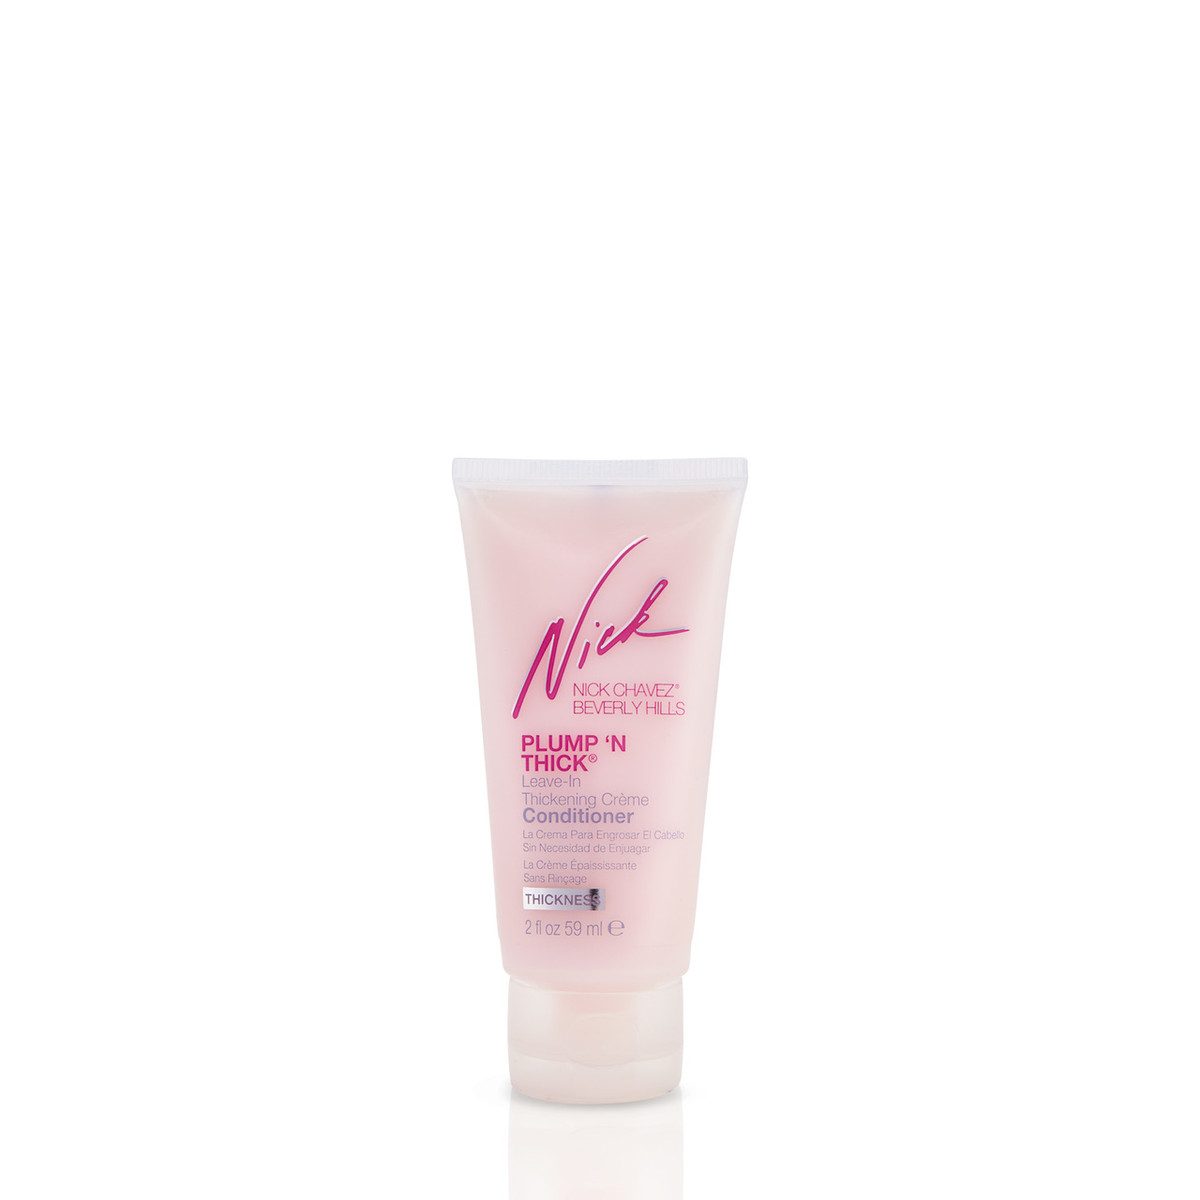 Plump 'n Thick Leave-in Thickening Creme Conditioner 2 fl oz.